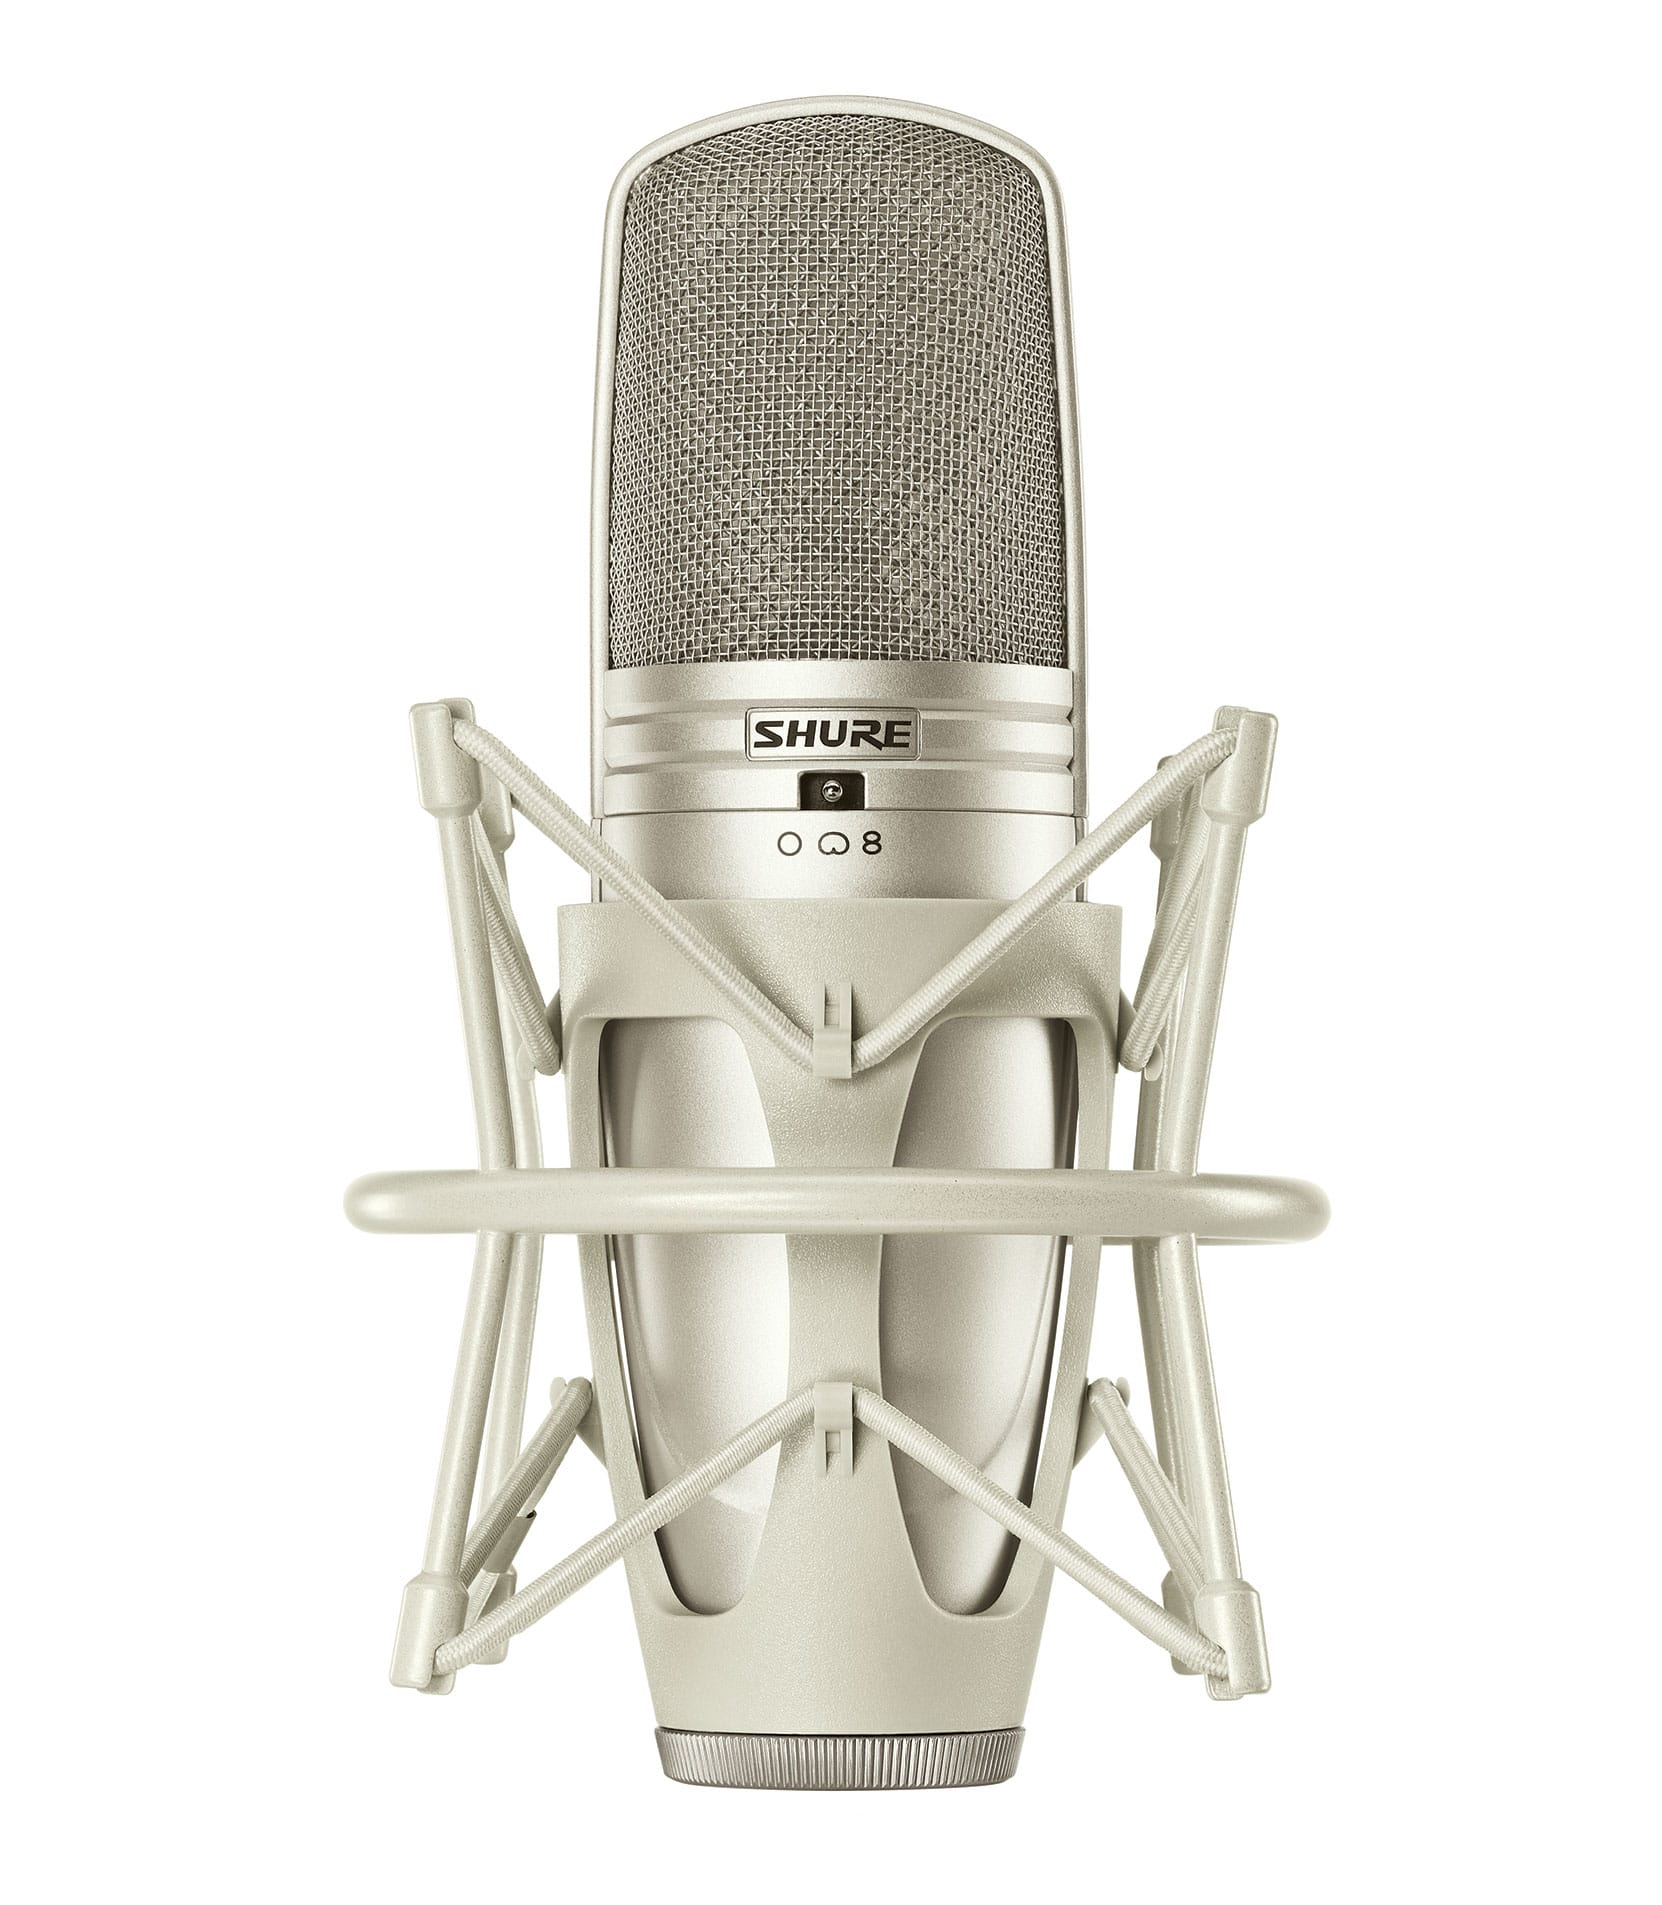 Shure - KSM44A/SL - Melody House Musical Instruments